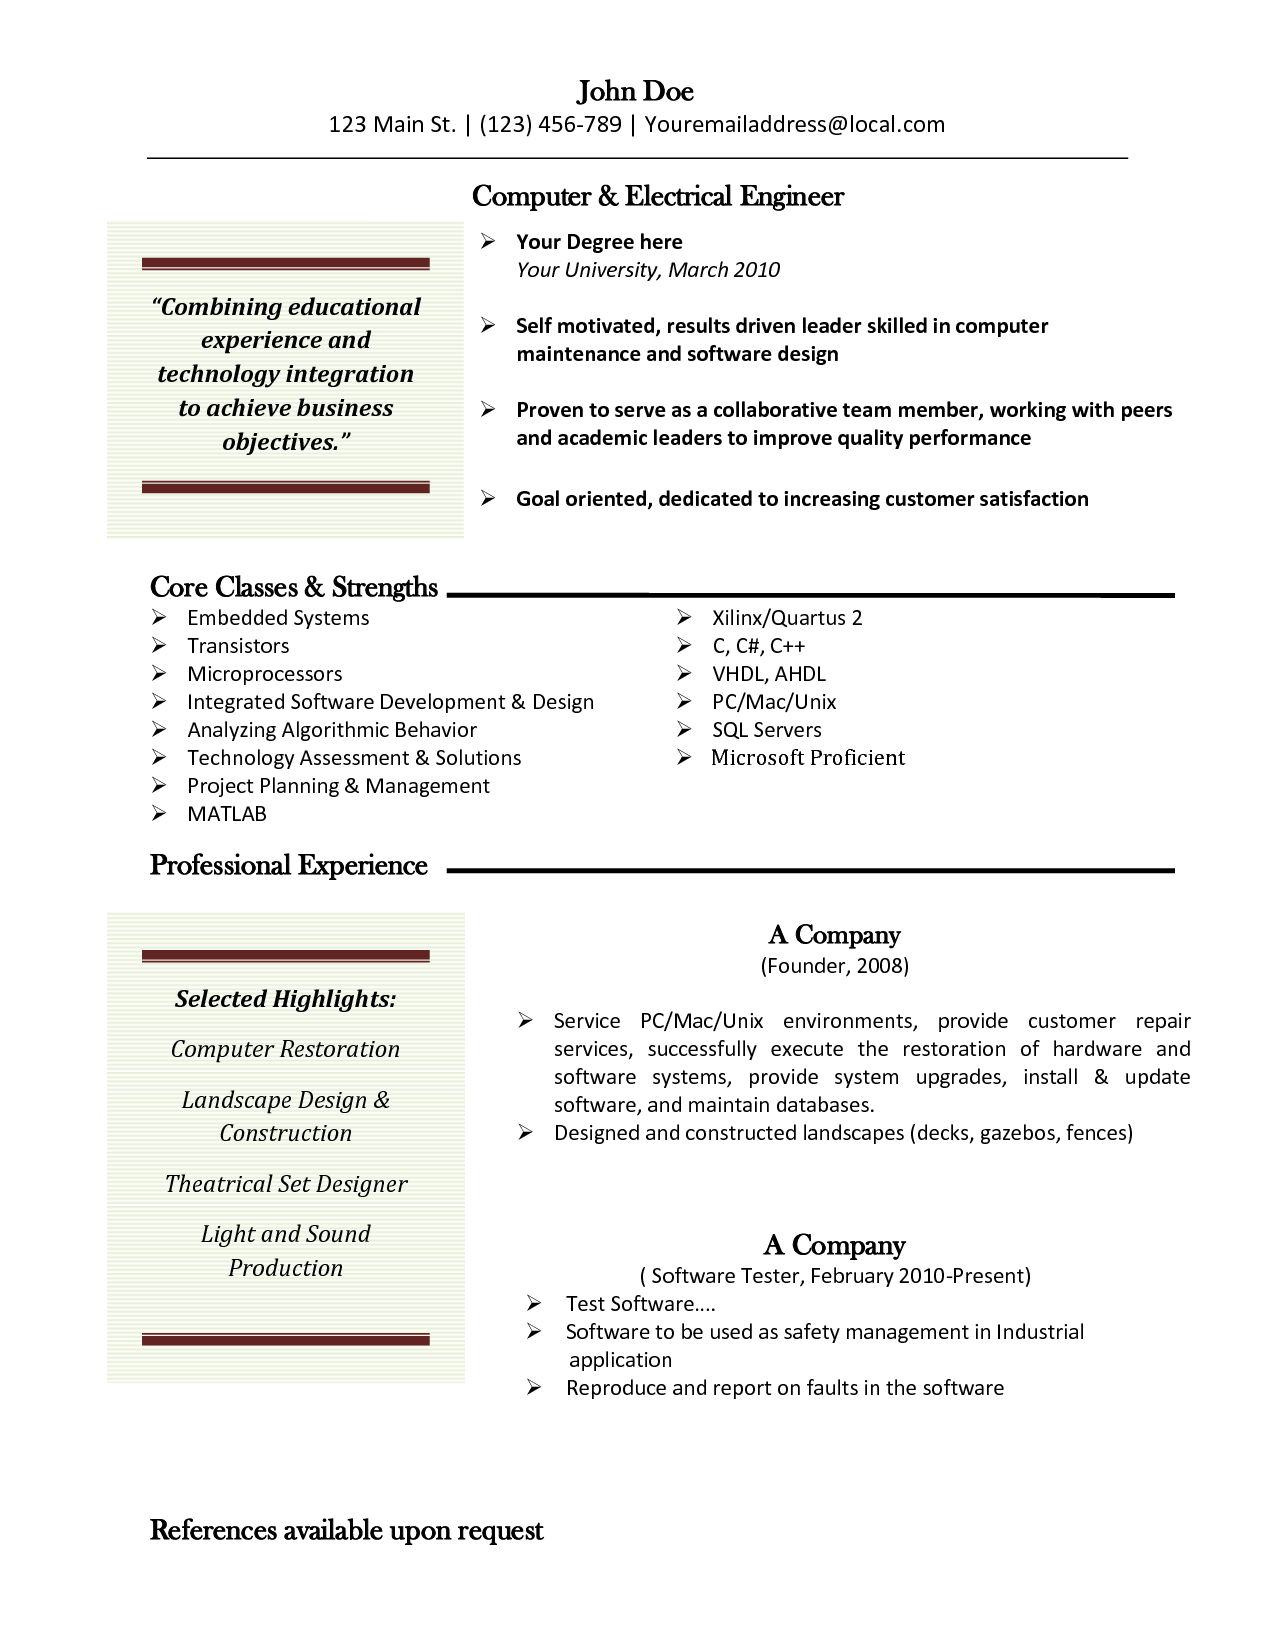 Resume Templates Free Freeresumetemplatesformaccqjykibi 1275×1650  Cover